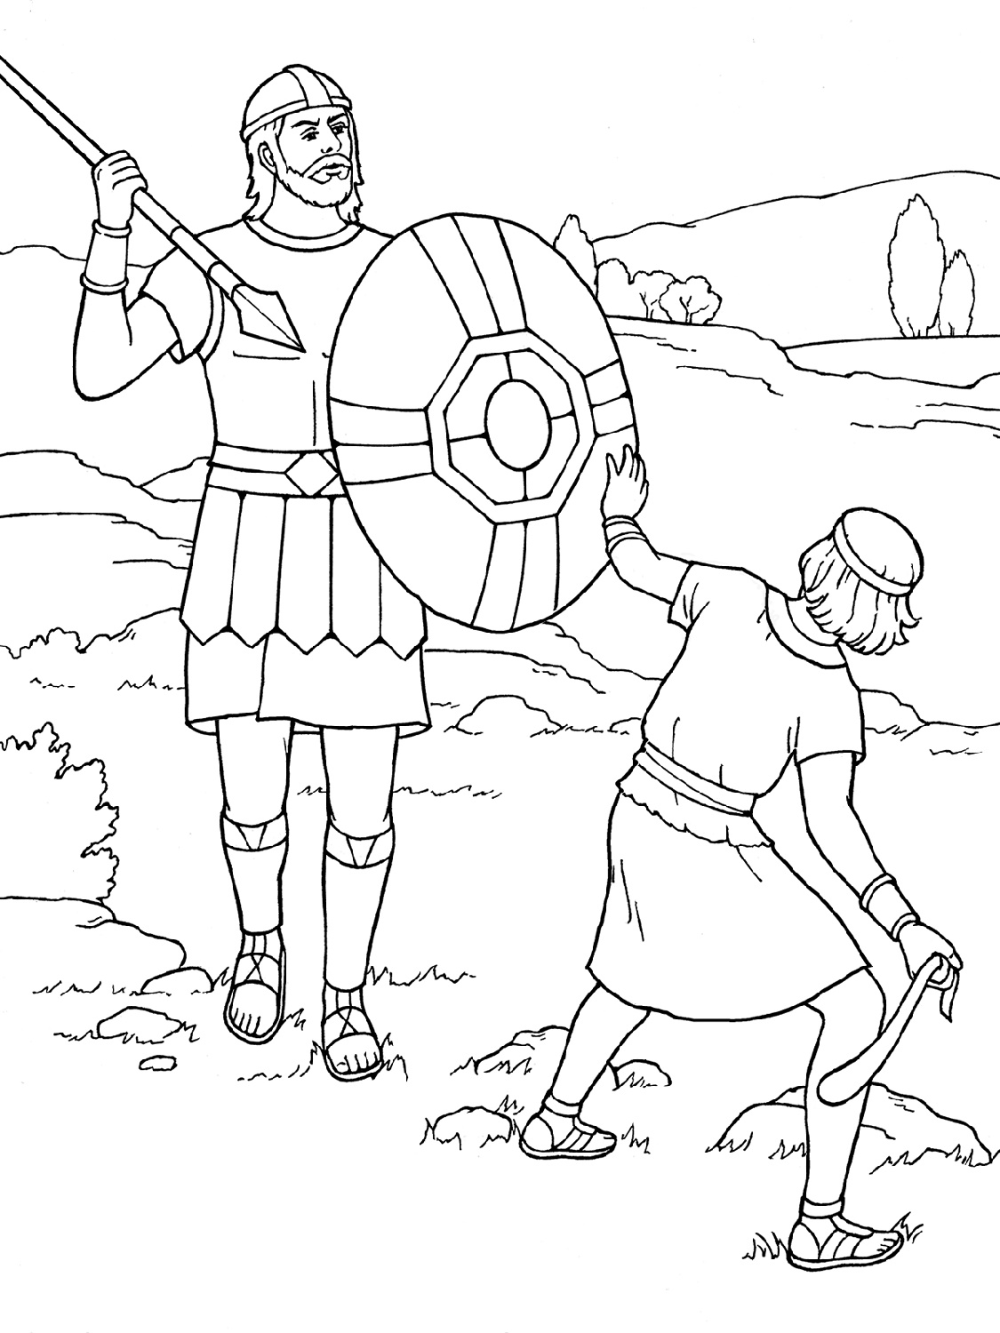 David And Goliath Coloring Page Printable Sunday School Coloring Pages David And Goliath School Coloring Pages